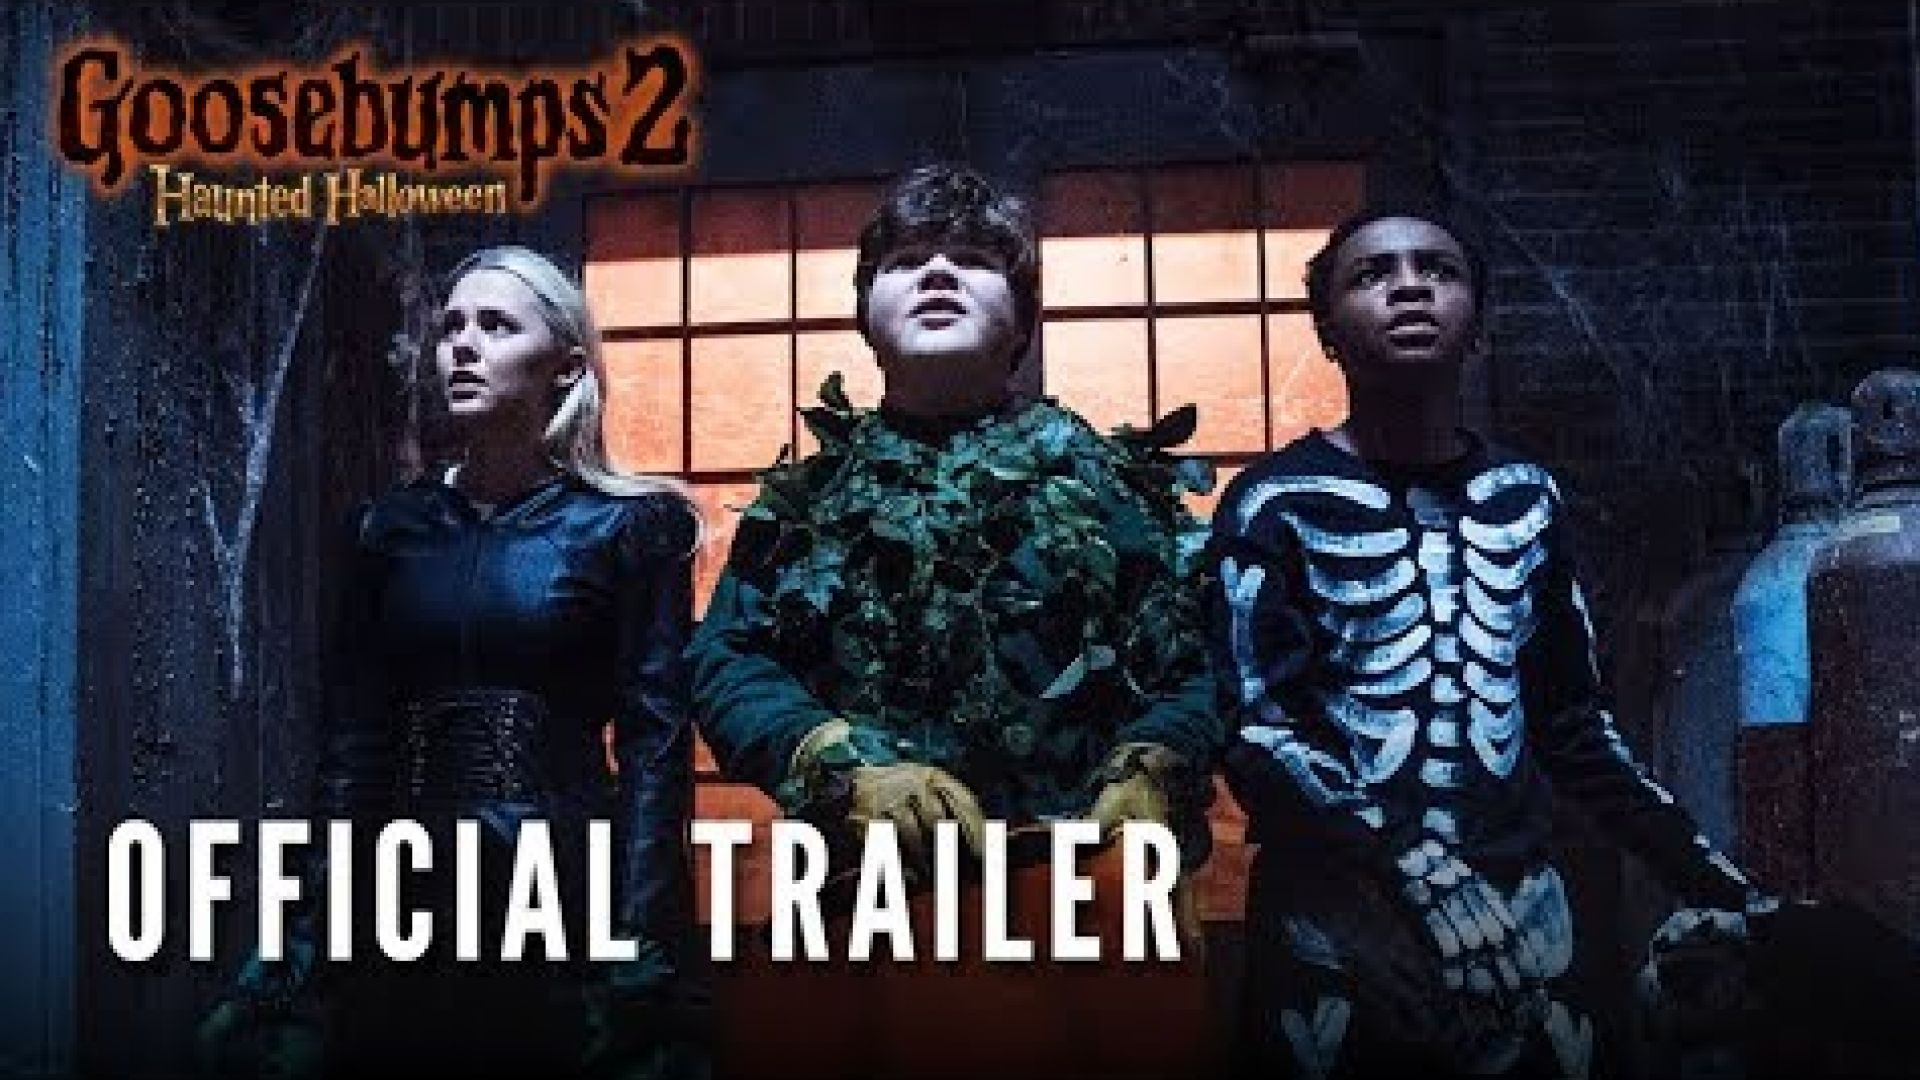 'Goosebumps 2: Haunted Halloween' Trailer - Sony Pictures